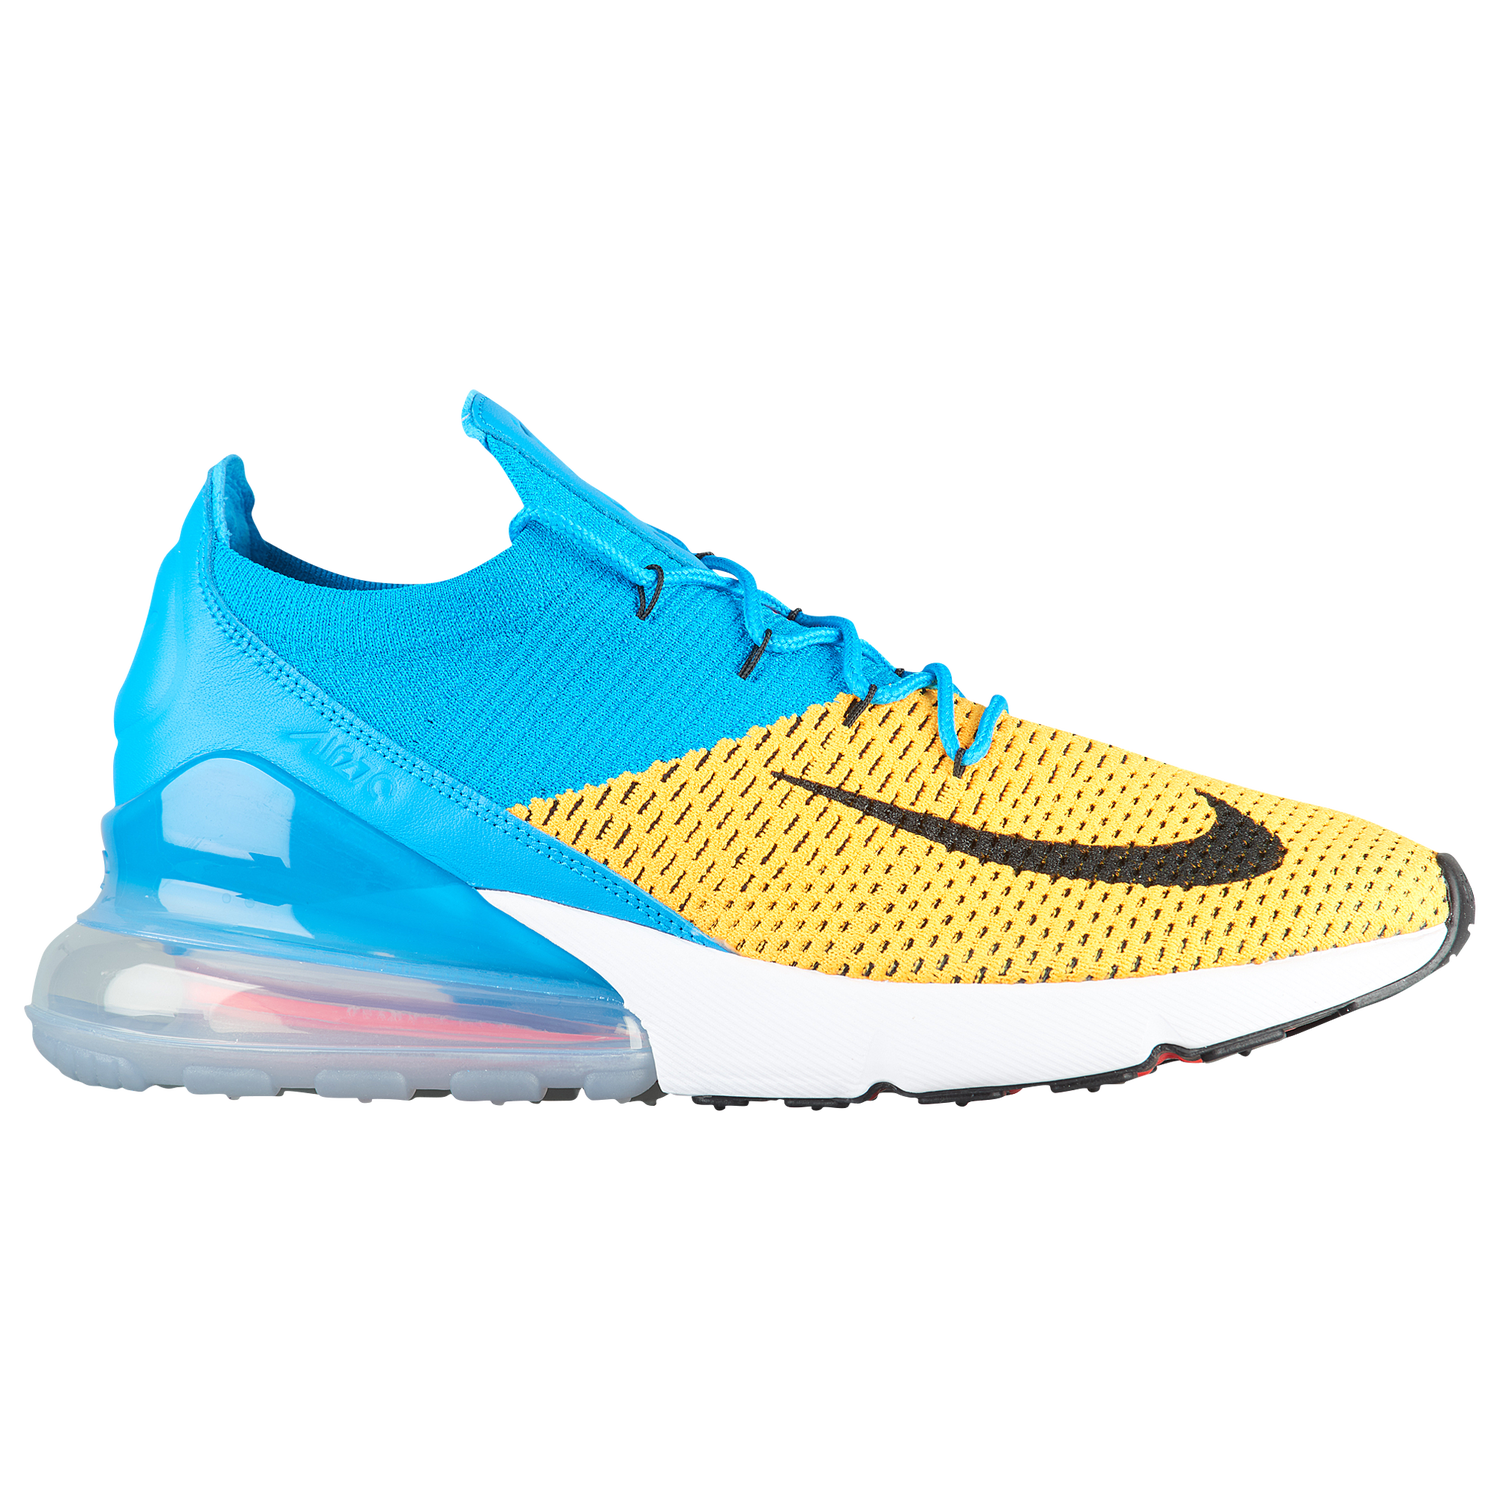 NIKE AIR MAX 270 FLYKNIT - MEN'S - Laser Orange/Black/Blue Orbit/Bright Crimson